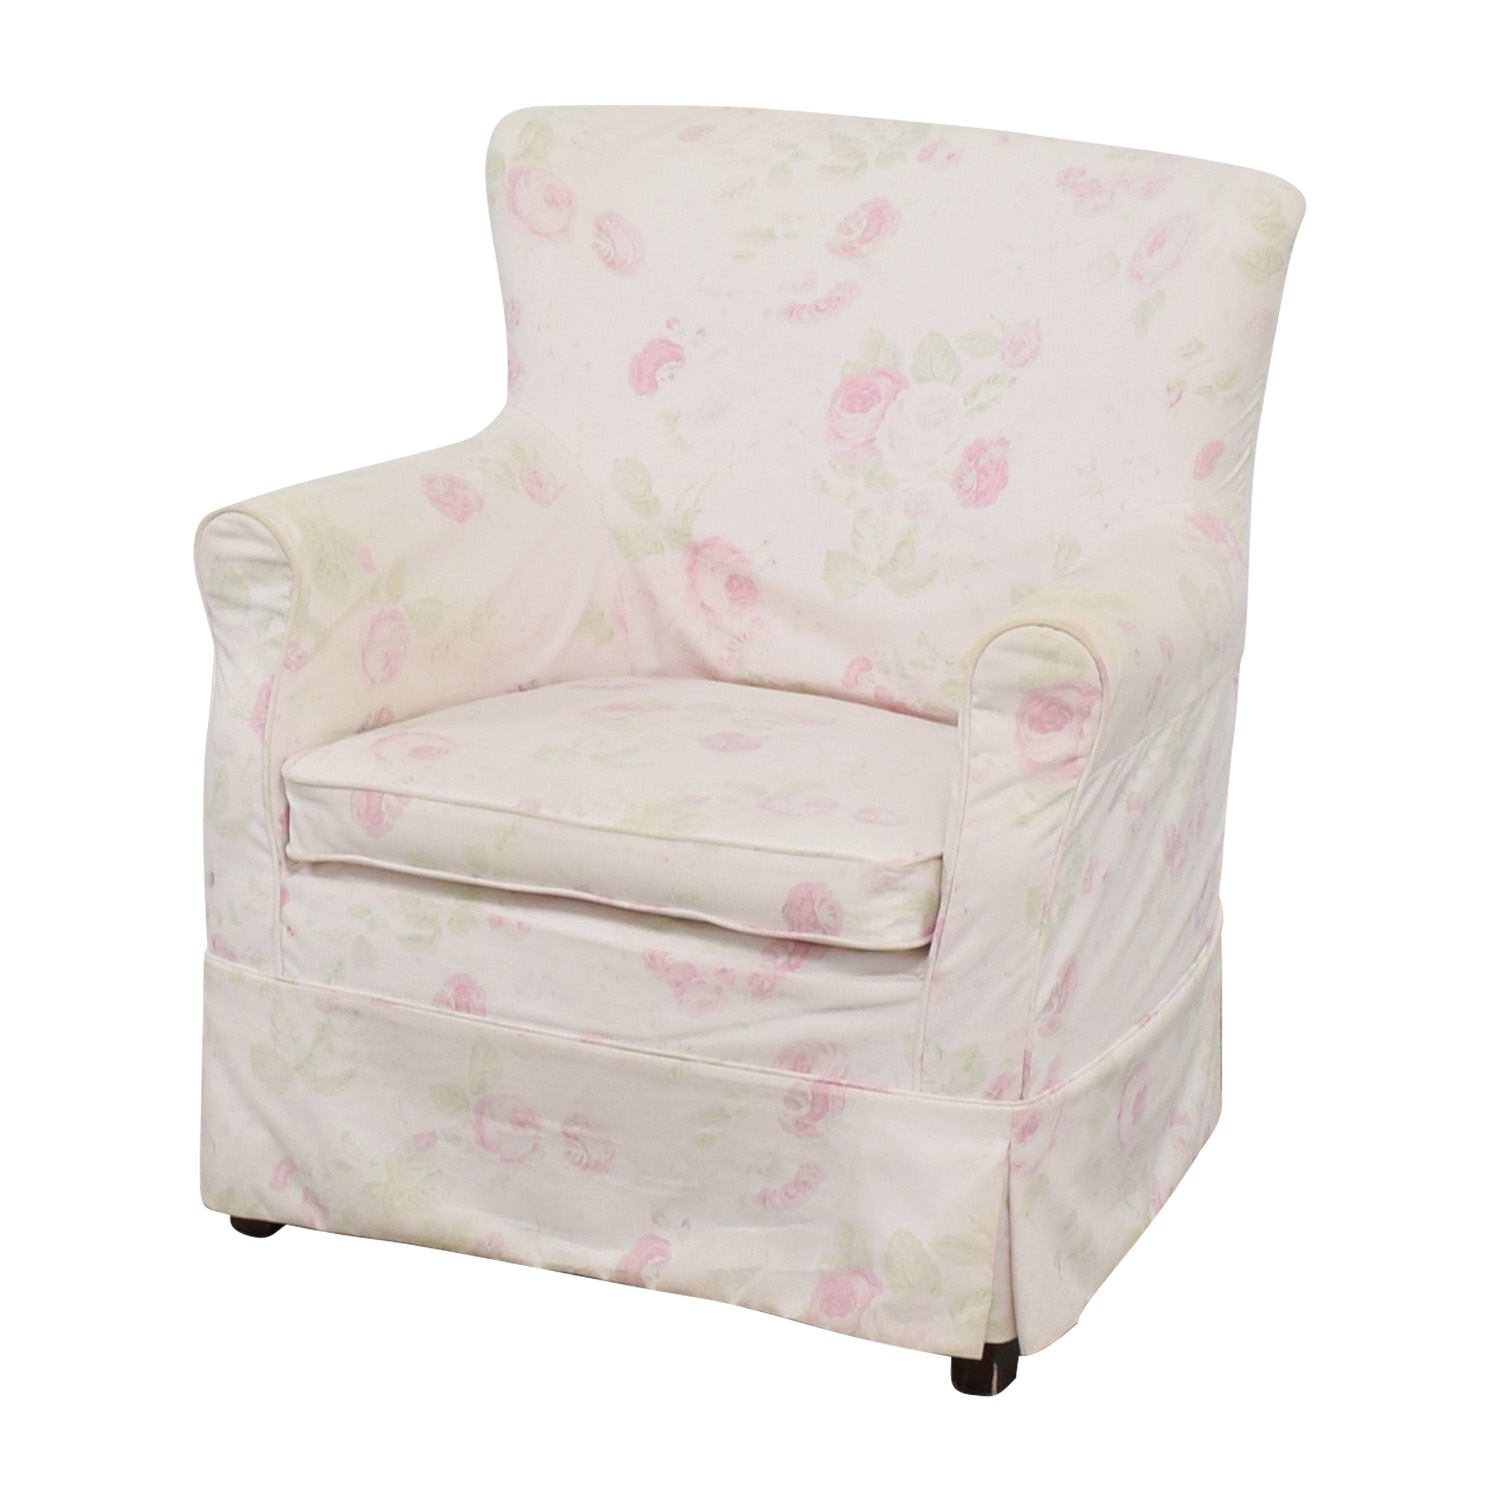 rose sofa slipcover navy blue leather and loveseat 90 off accent chair chairs